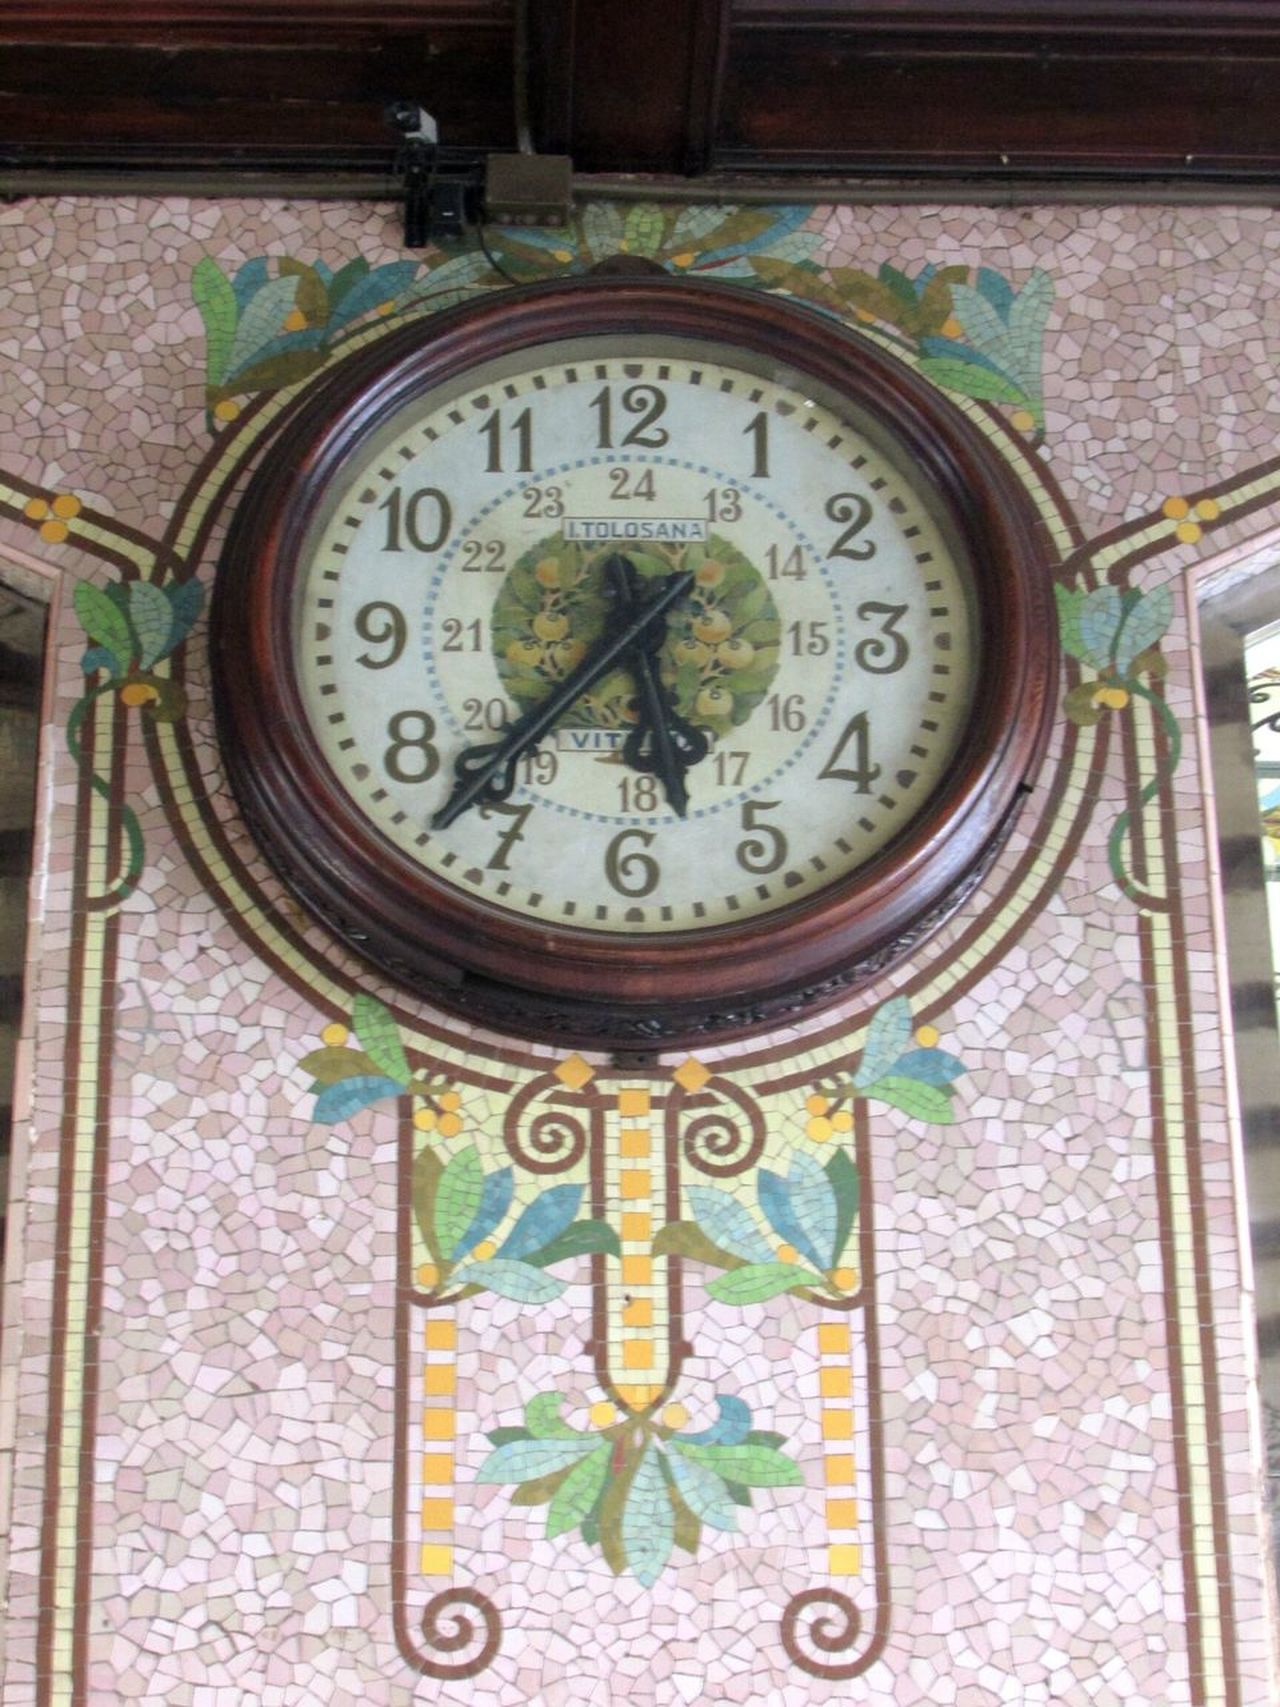 Number Day No People Architecture Built Structure Clock Building Exterior Roman Numeral Outdoors Clock Face Close-up Minute Hand Time